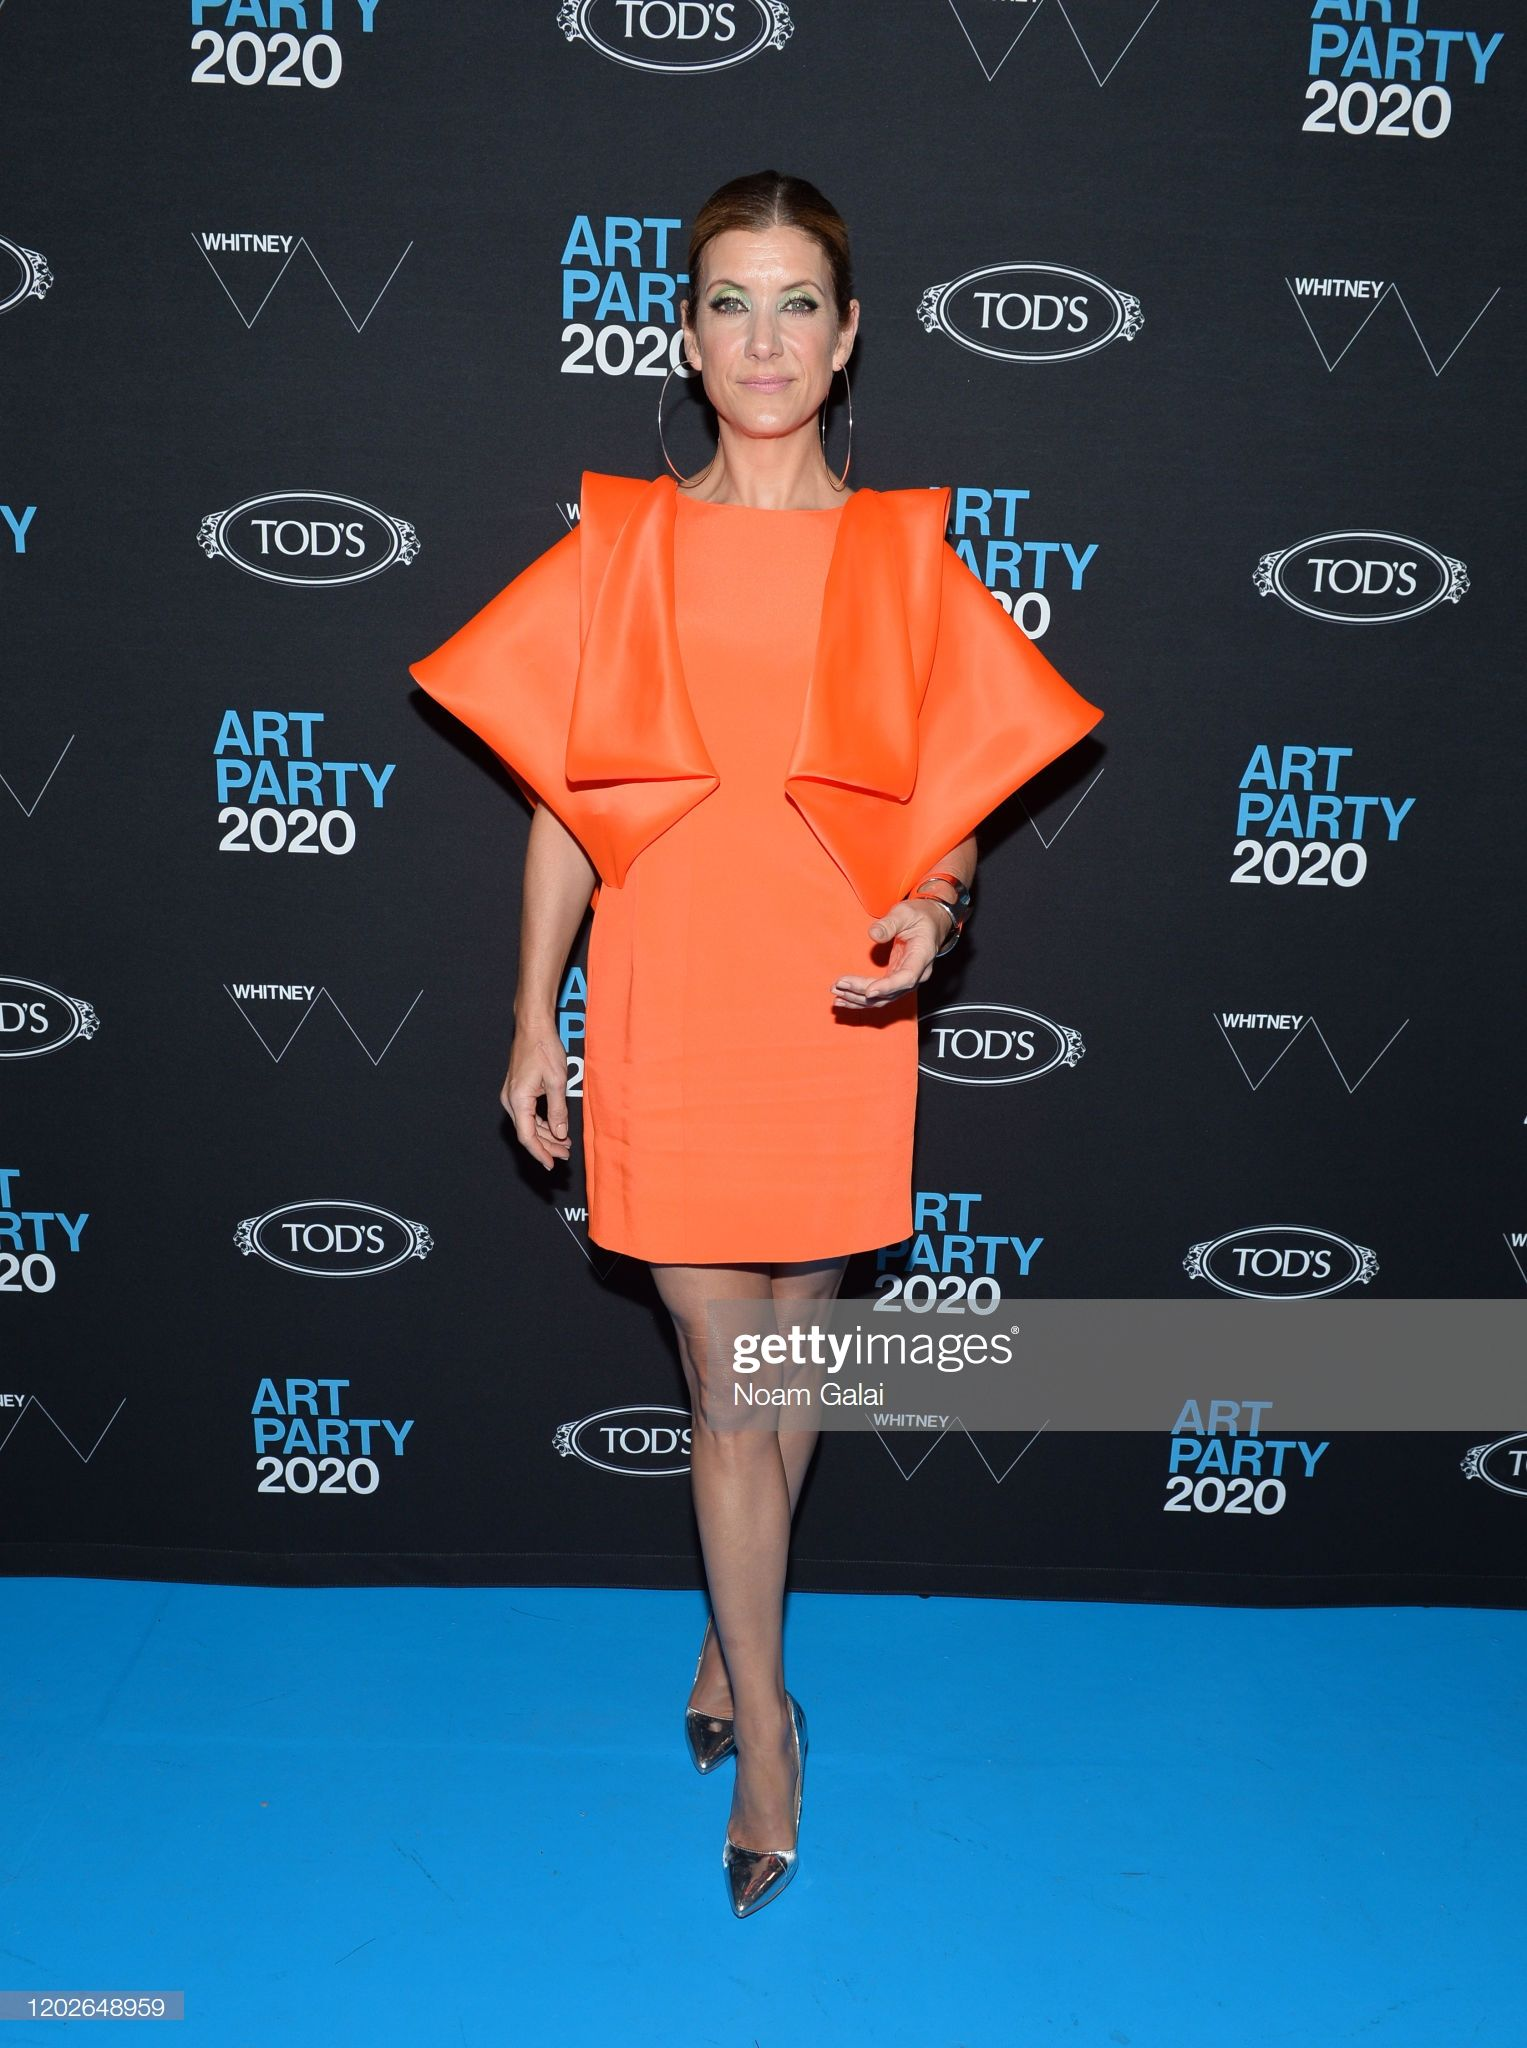 Kate Walsh Attends The 2020 Whitney Art Party At The Whitney Museum In 2020 Kate Walsh Art Party Whitney